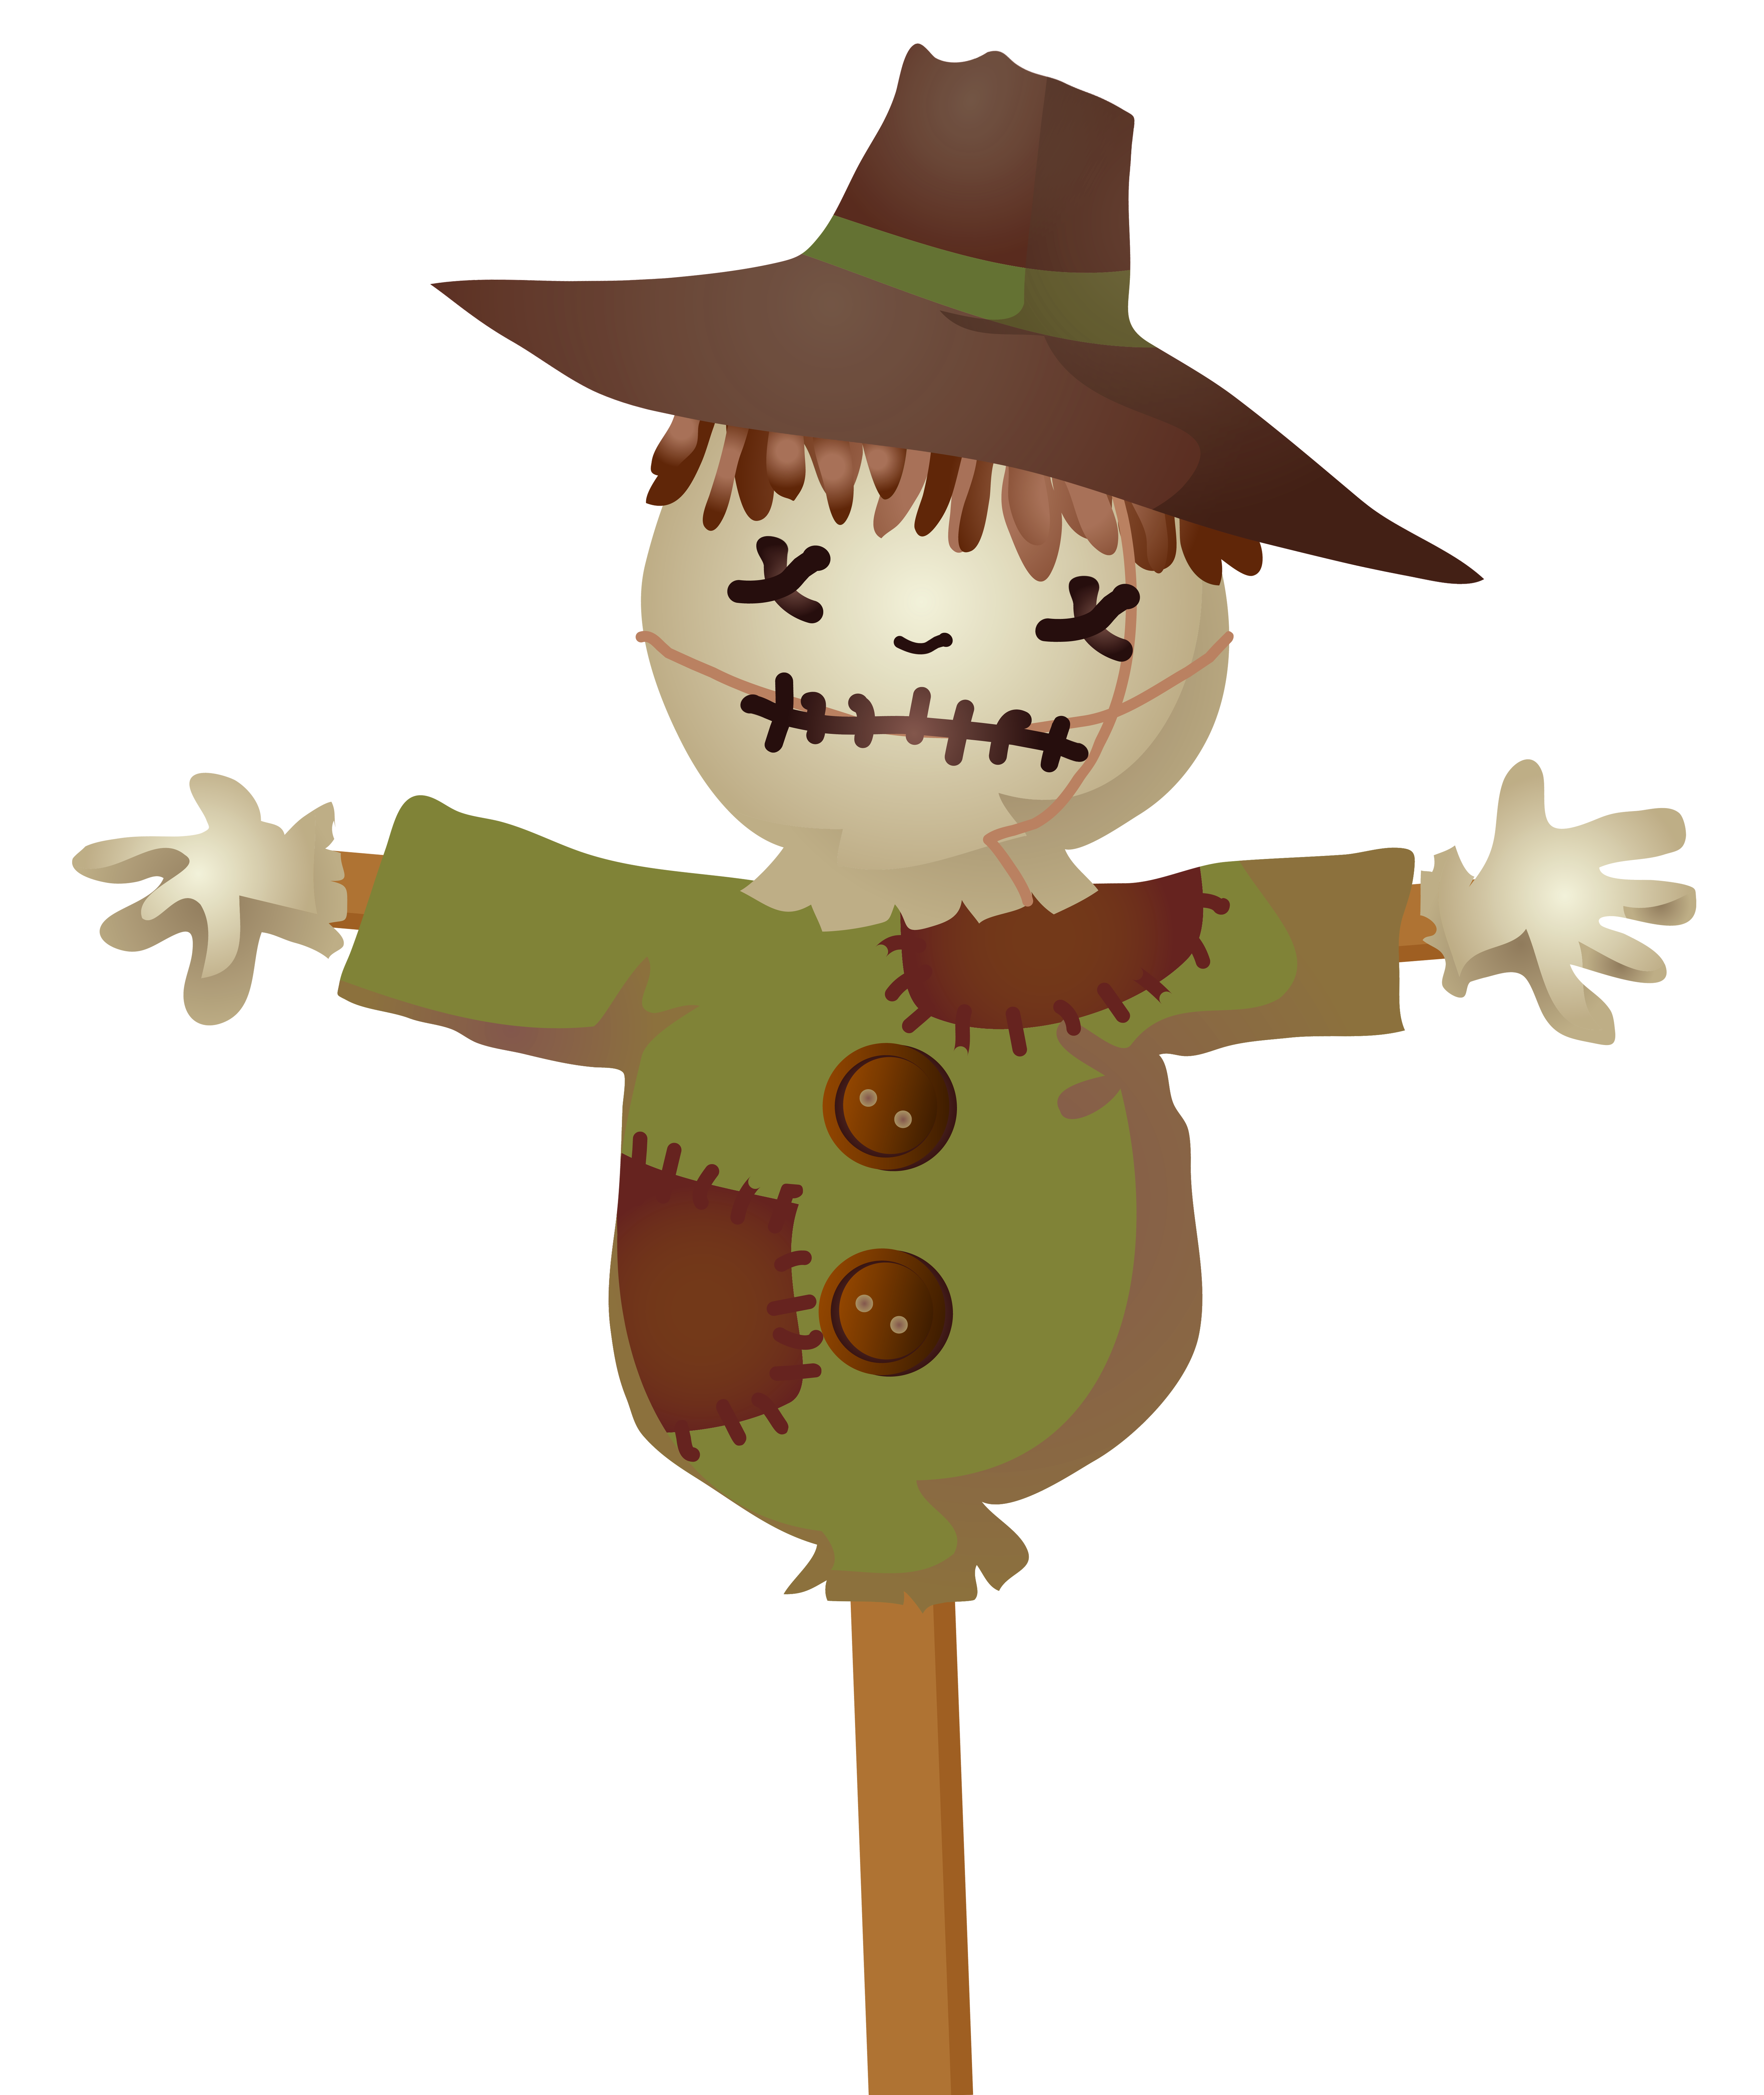 Scare crow png. Scarecrow clip art image